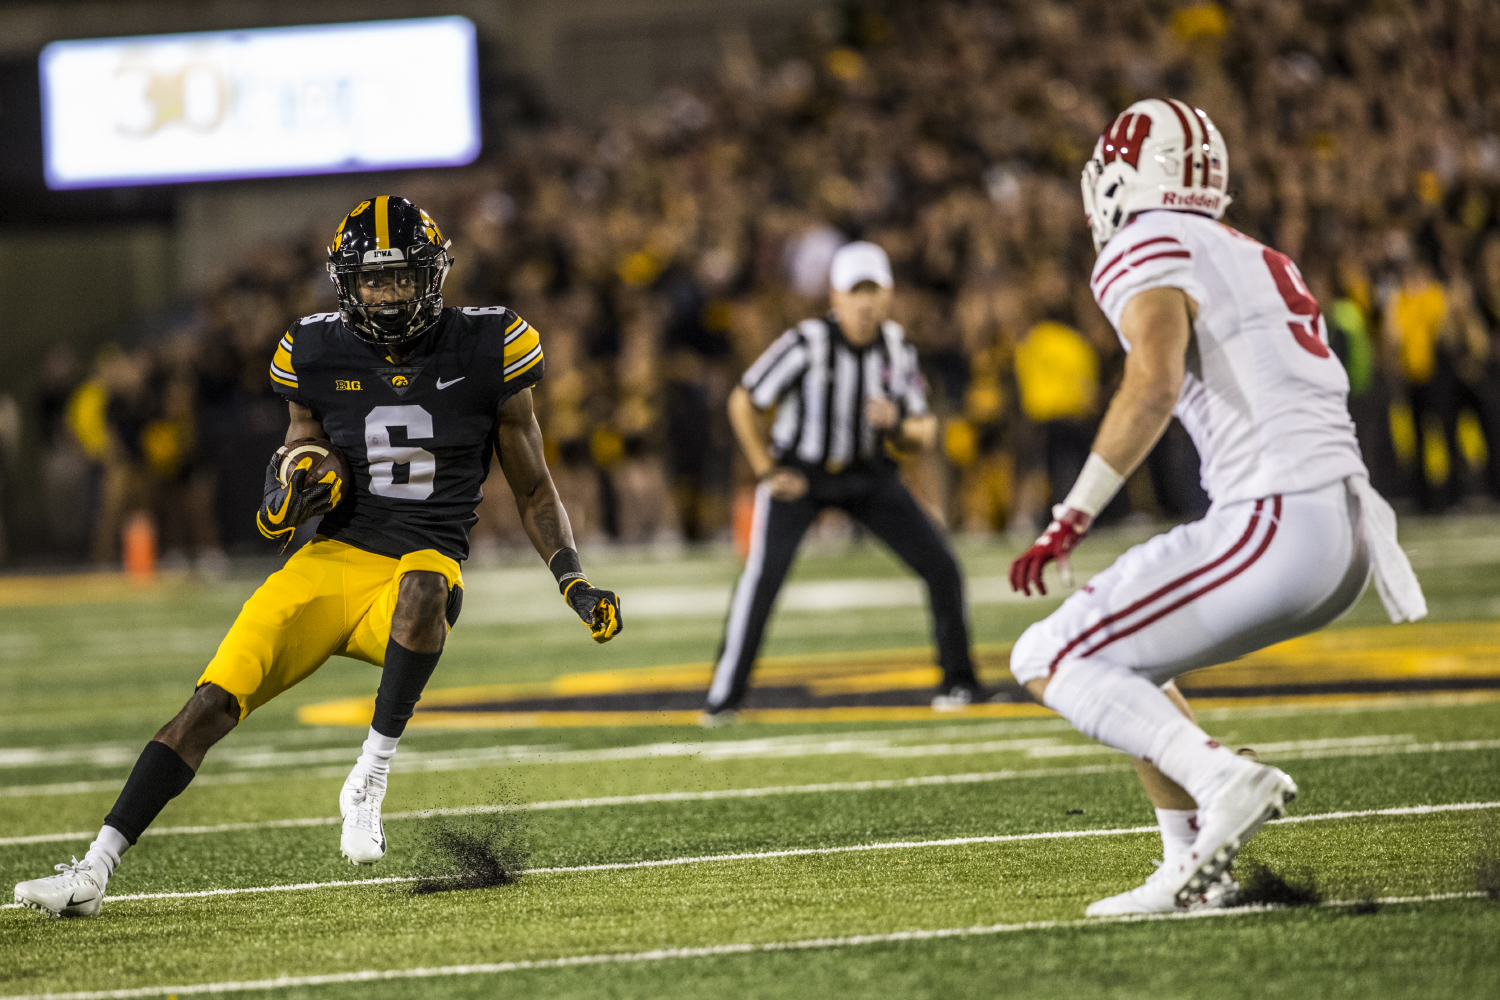 Iowa wide receiver Ihmir Smith-Marsette makes a cut during Iowa's game against Wisconsin at Kinnick Stadium on Saturday, Sept. 22, 2018. The Badgers defeated the Hawkeyes 28-17.